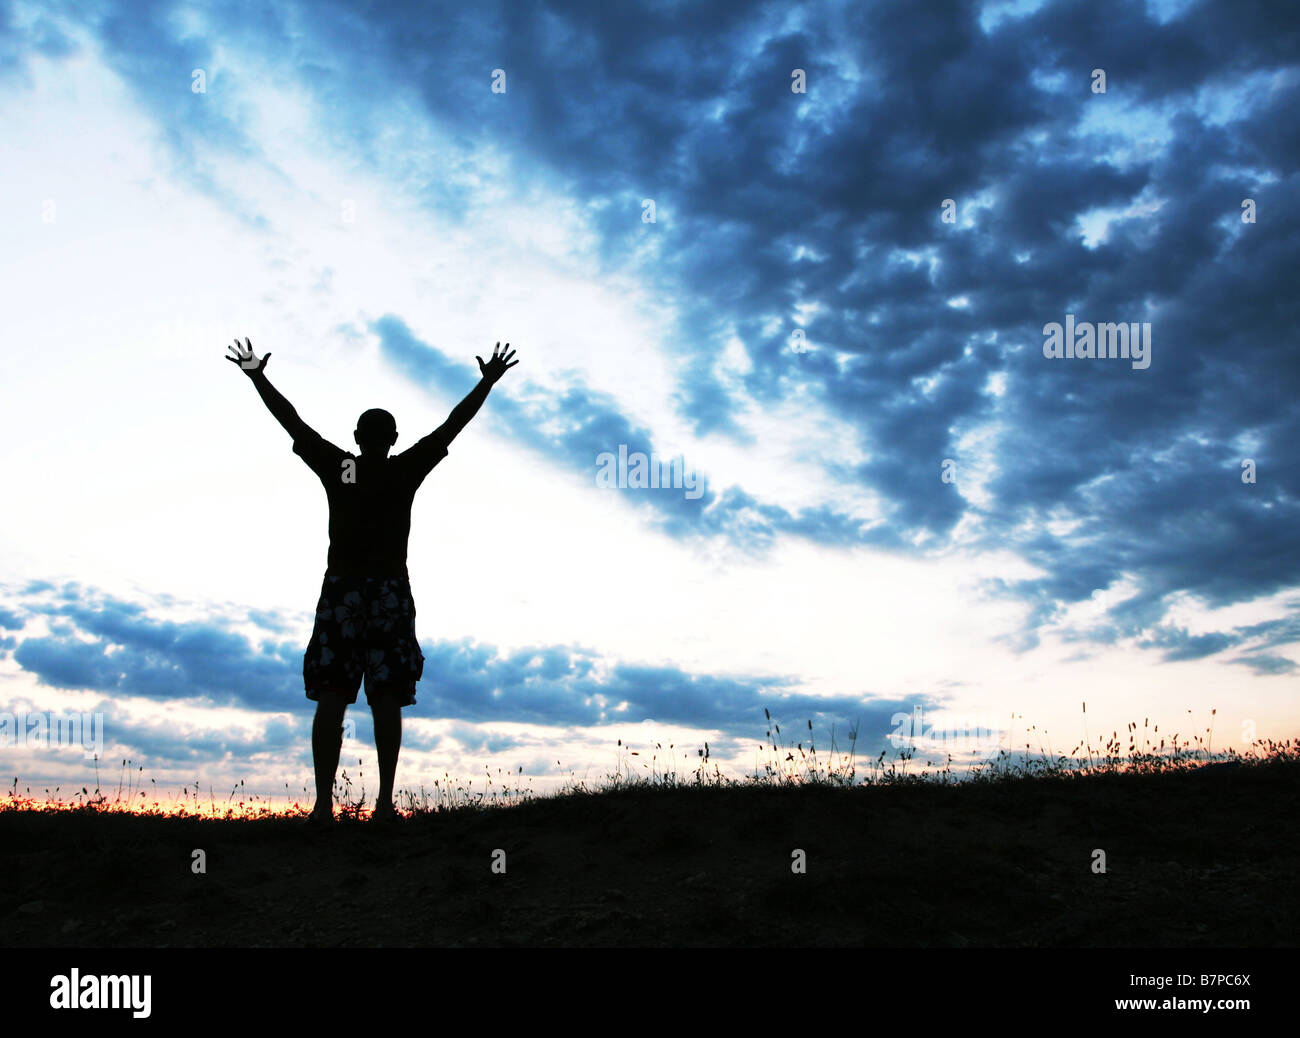 Happy man silhouette - Stock Image